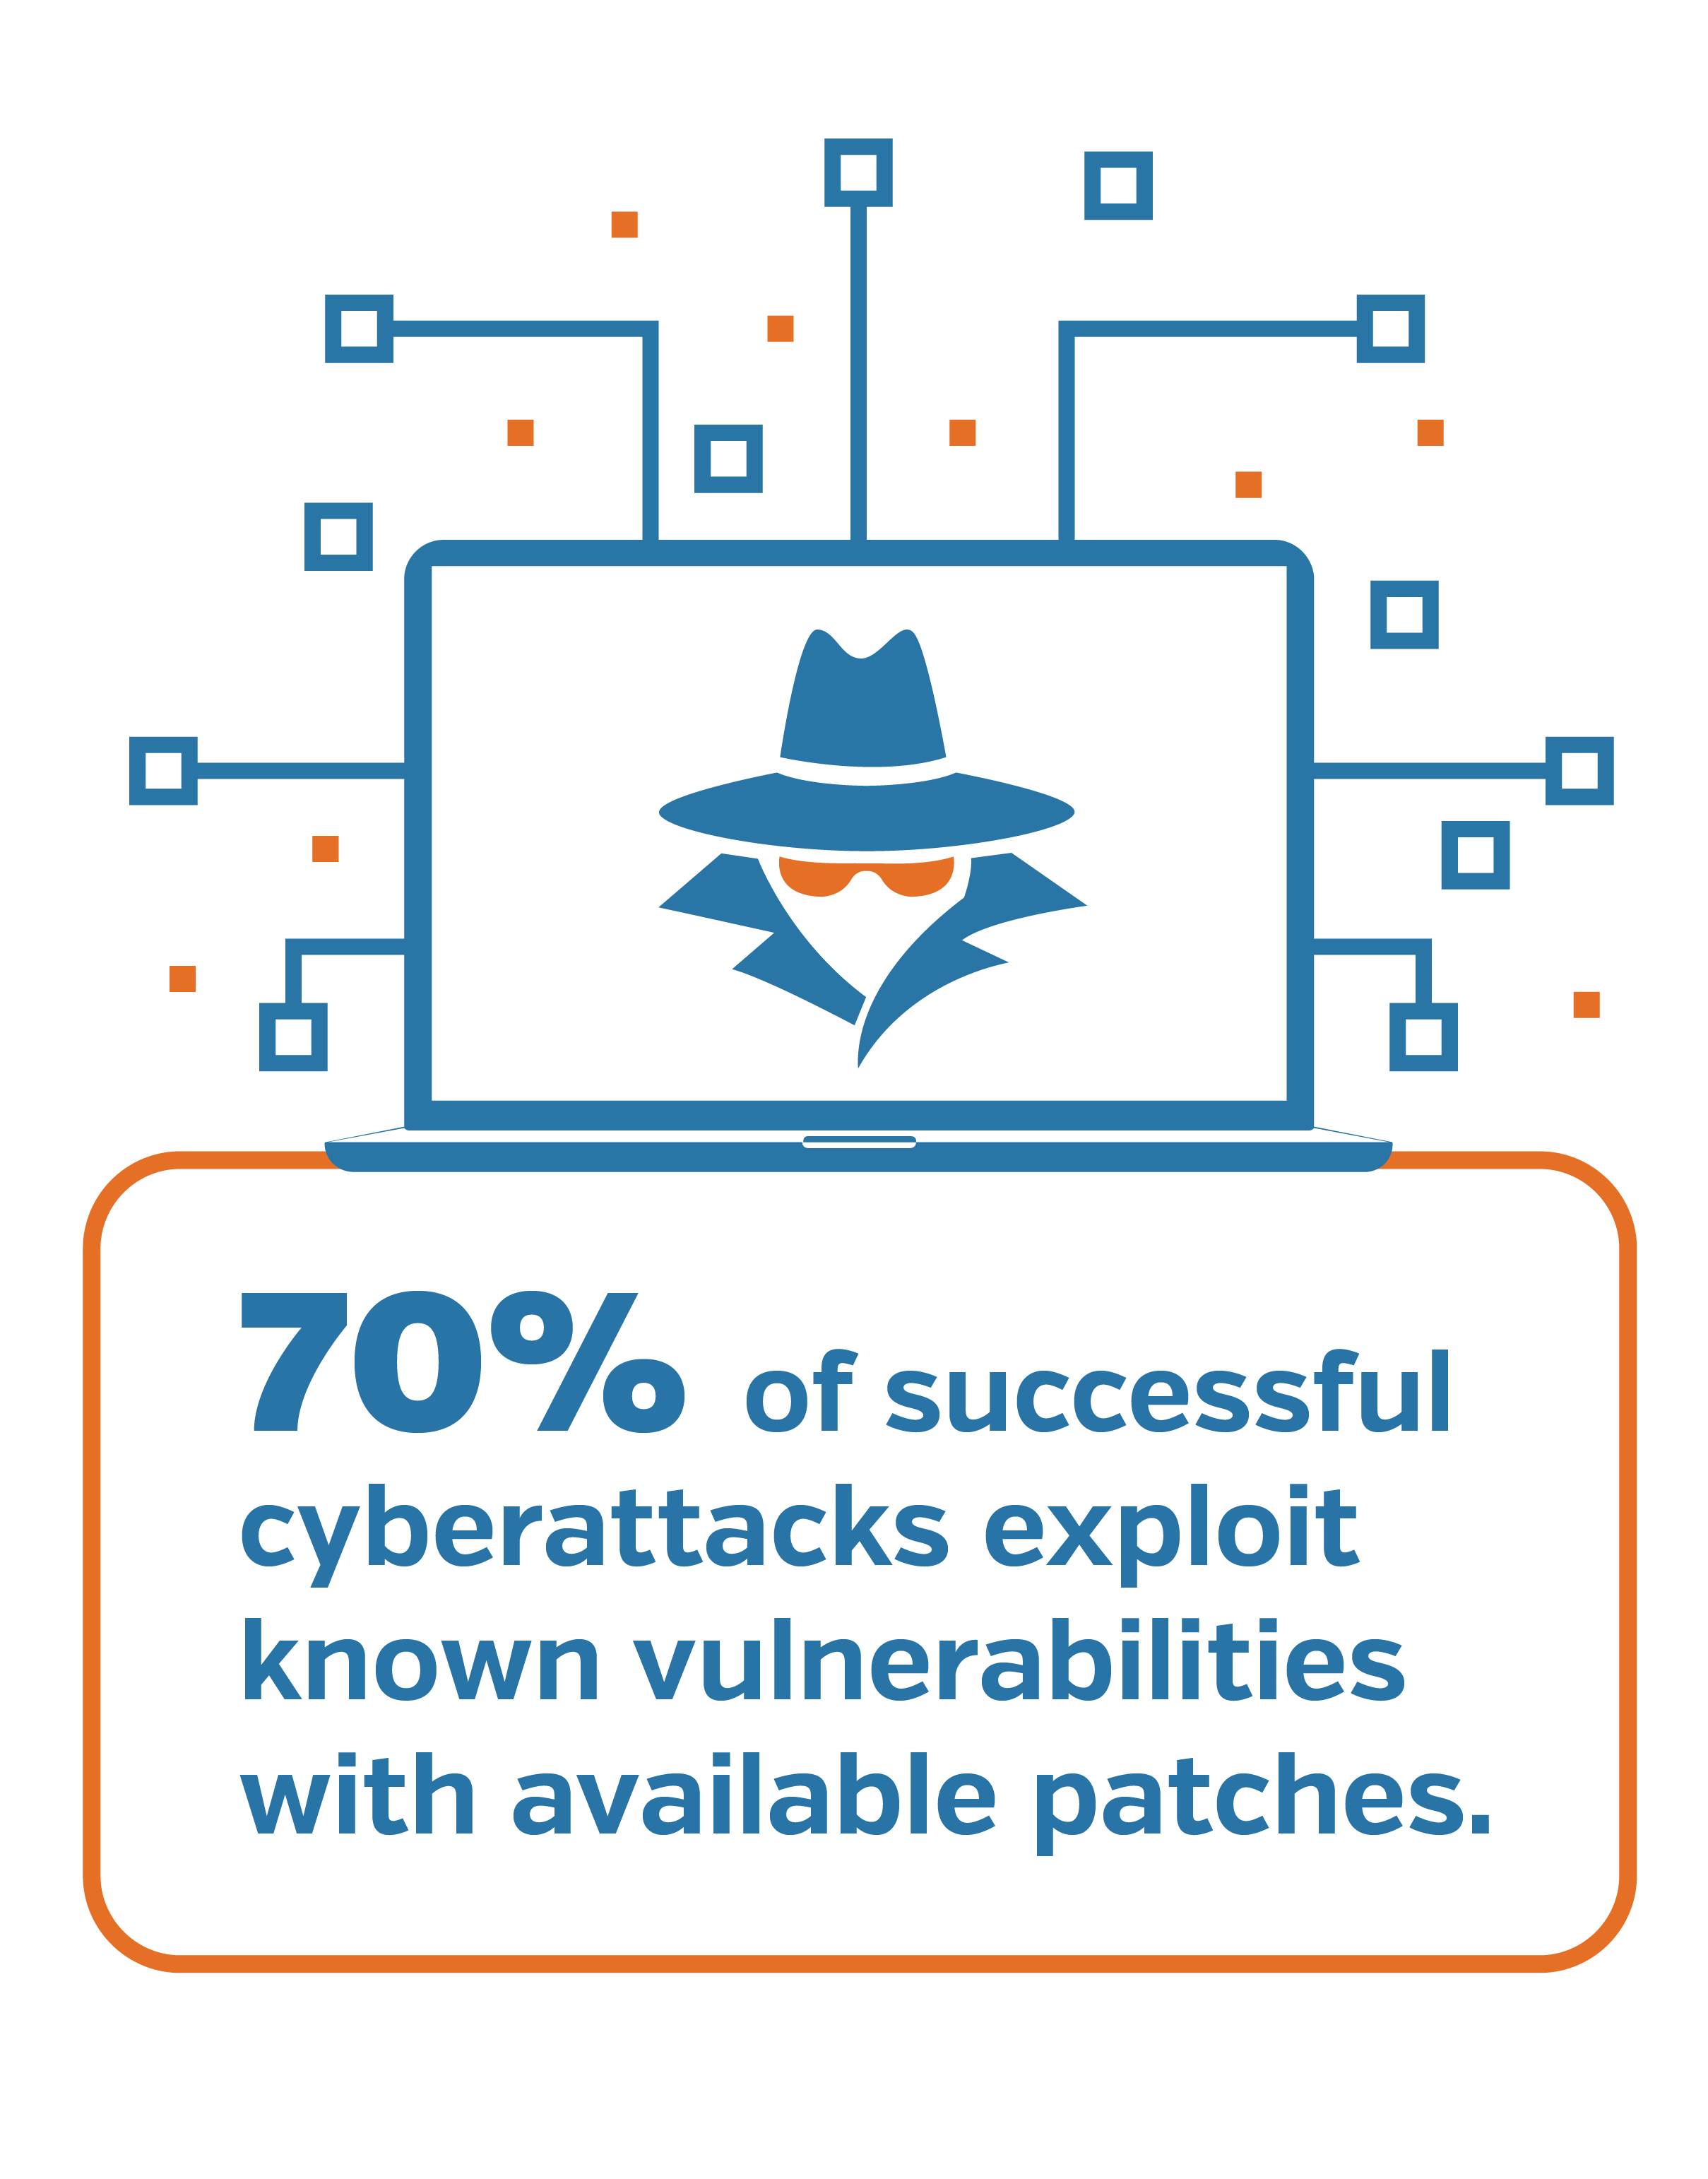 Approximately 70% of successful cyberattacks exploit known vulnerabilities.